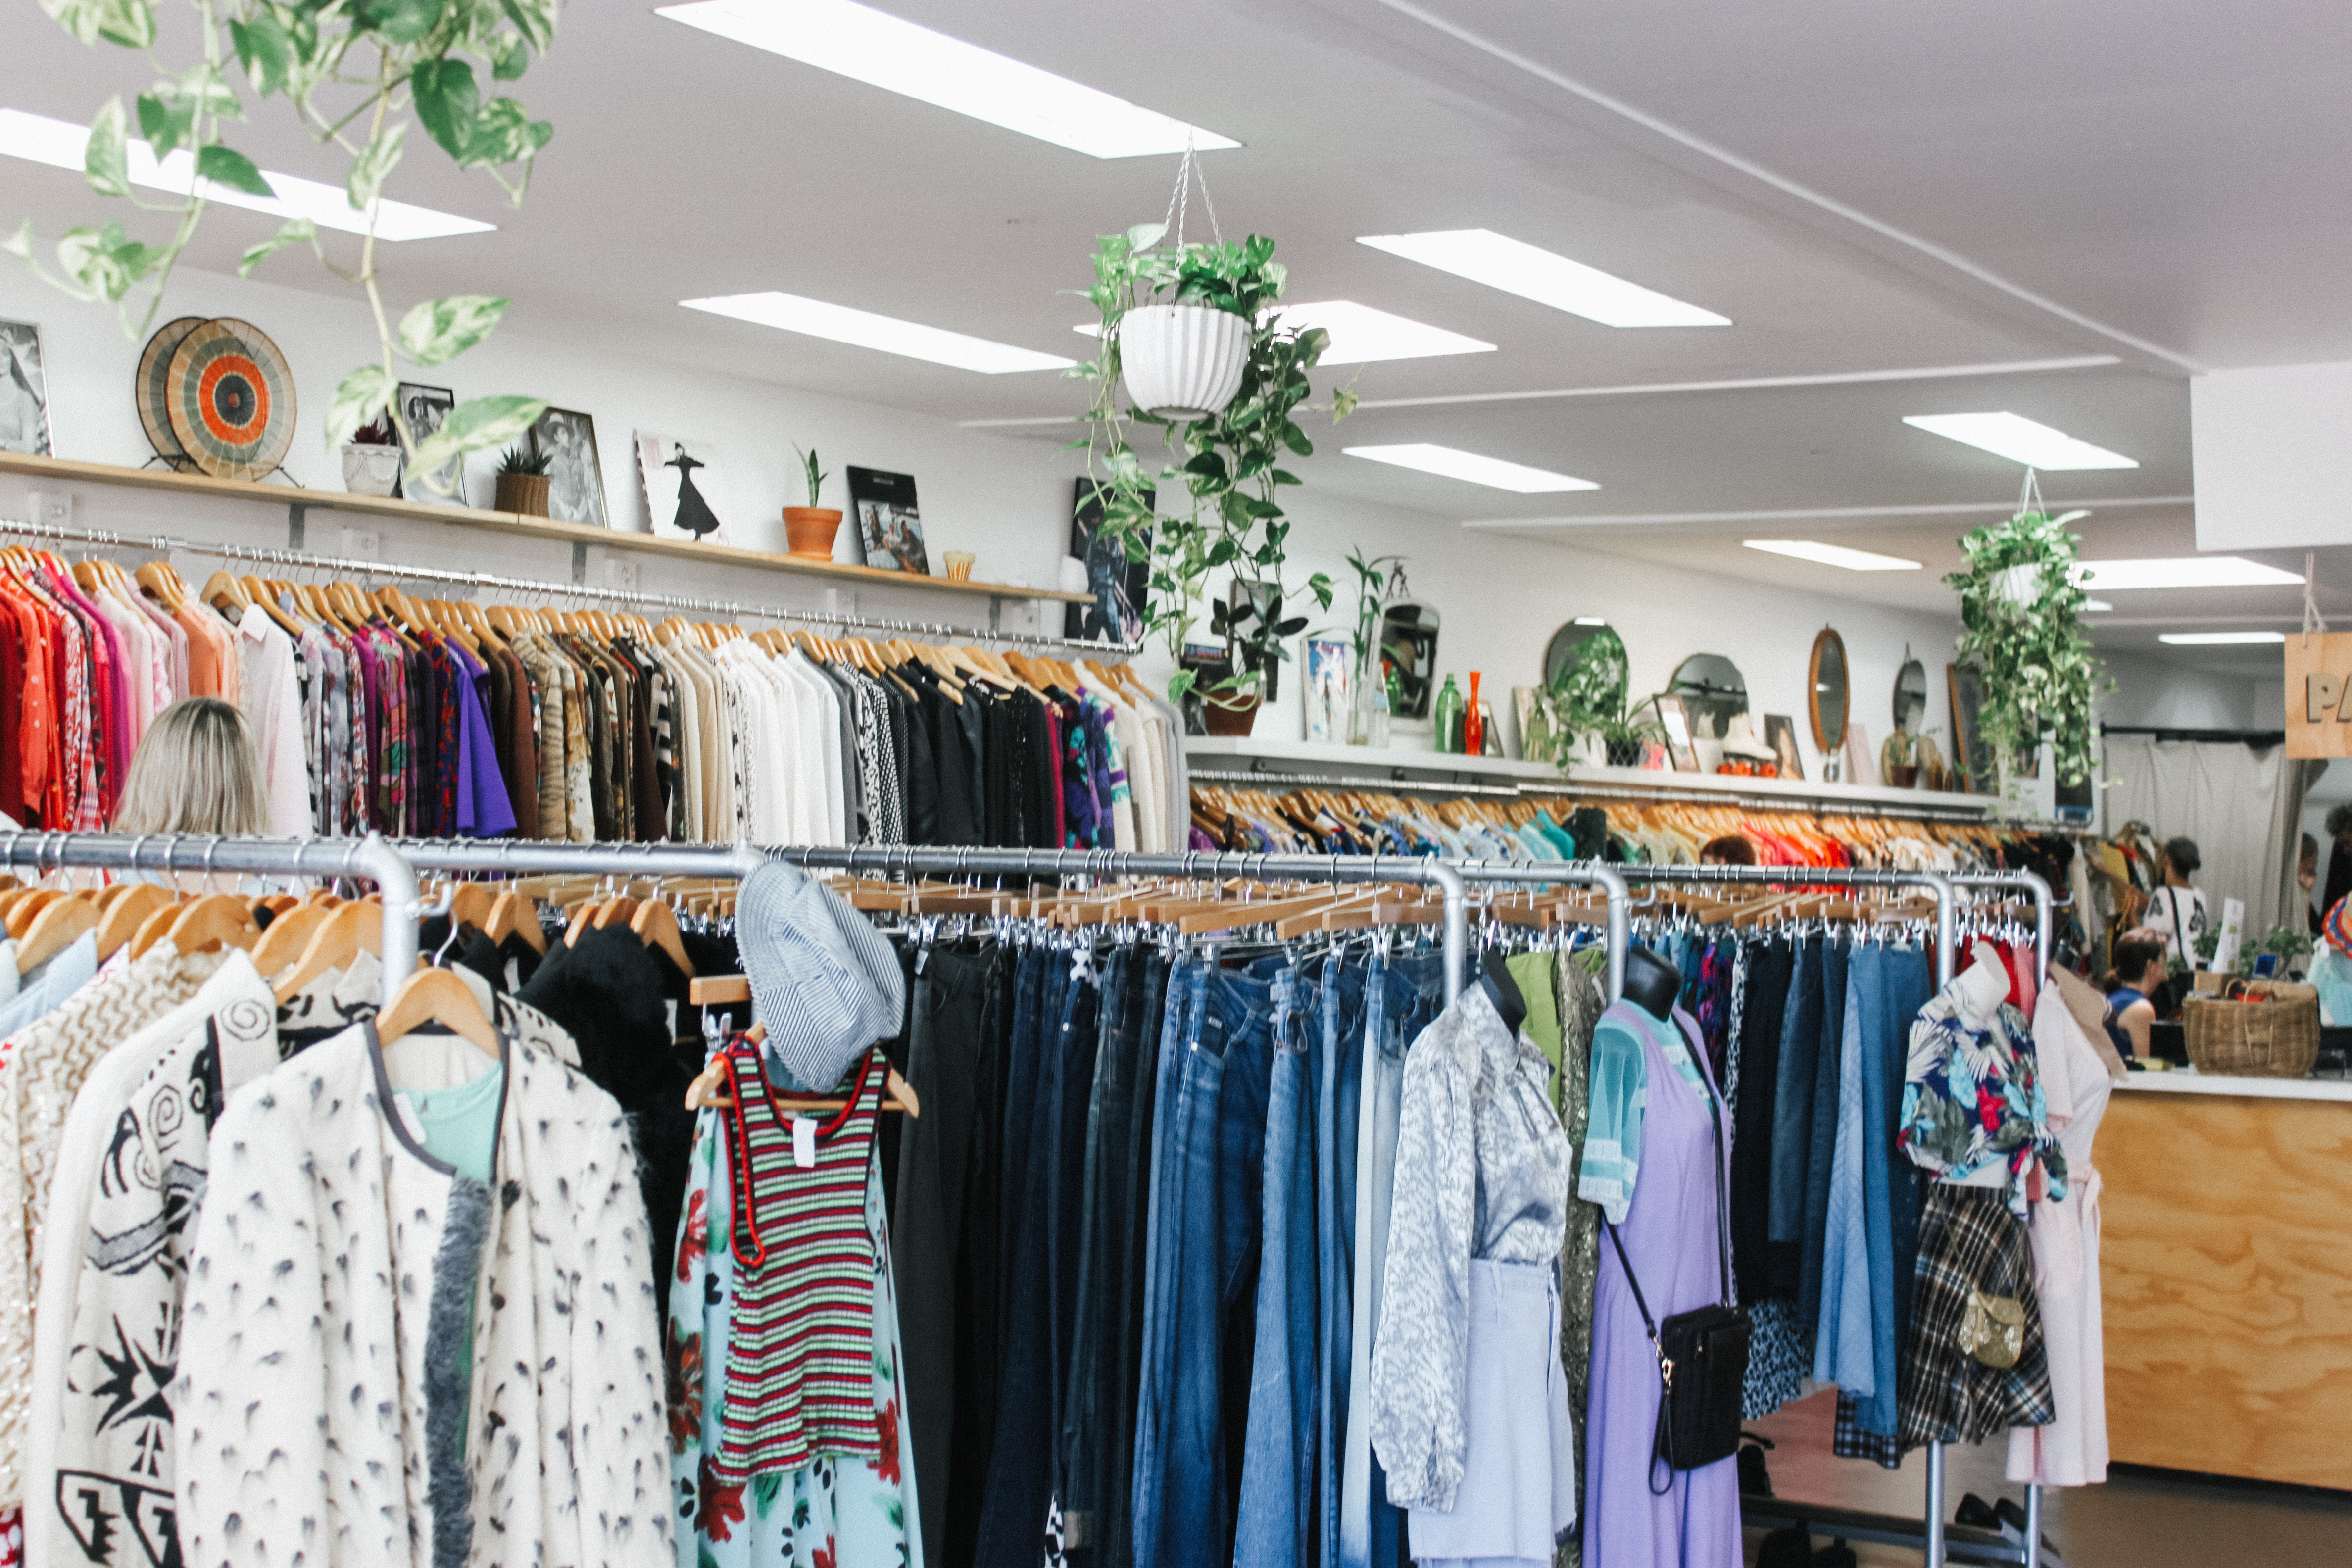 The Pros and Cons of Thrift Shops versus Consignment Stores